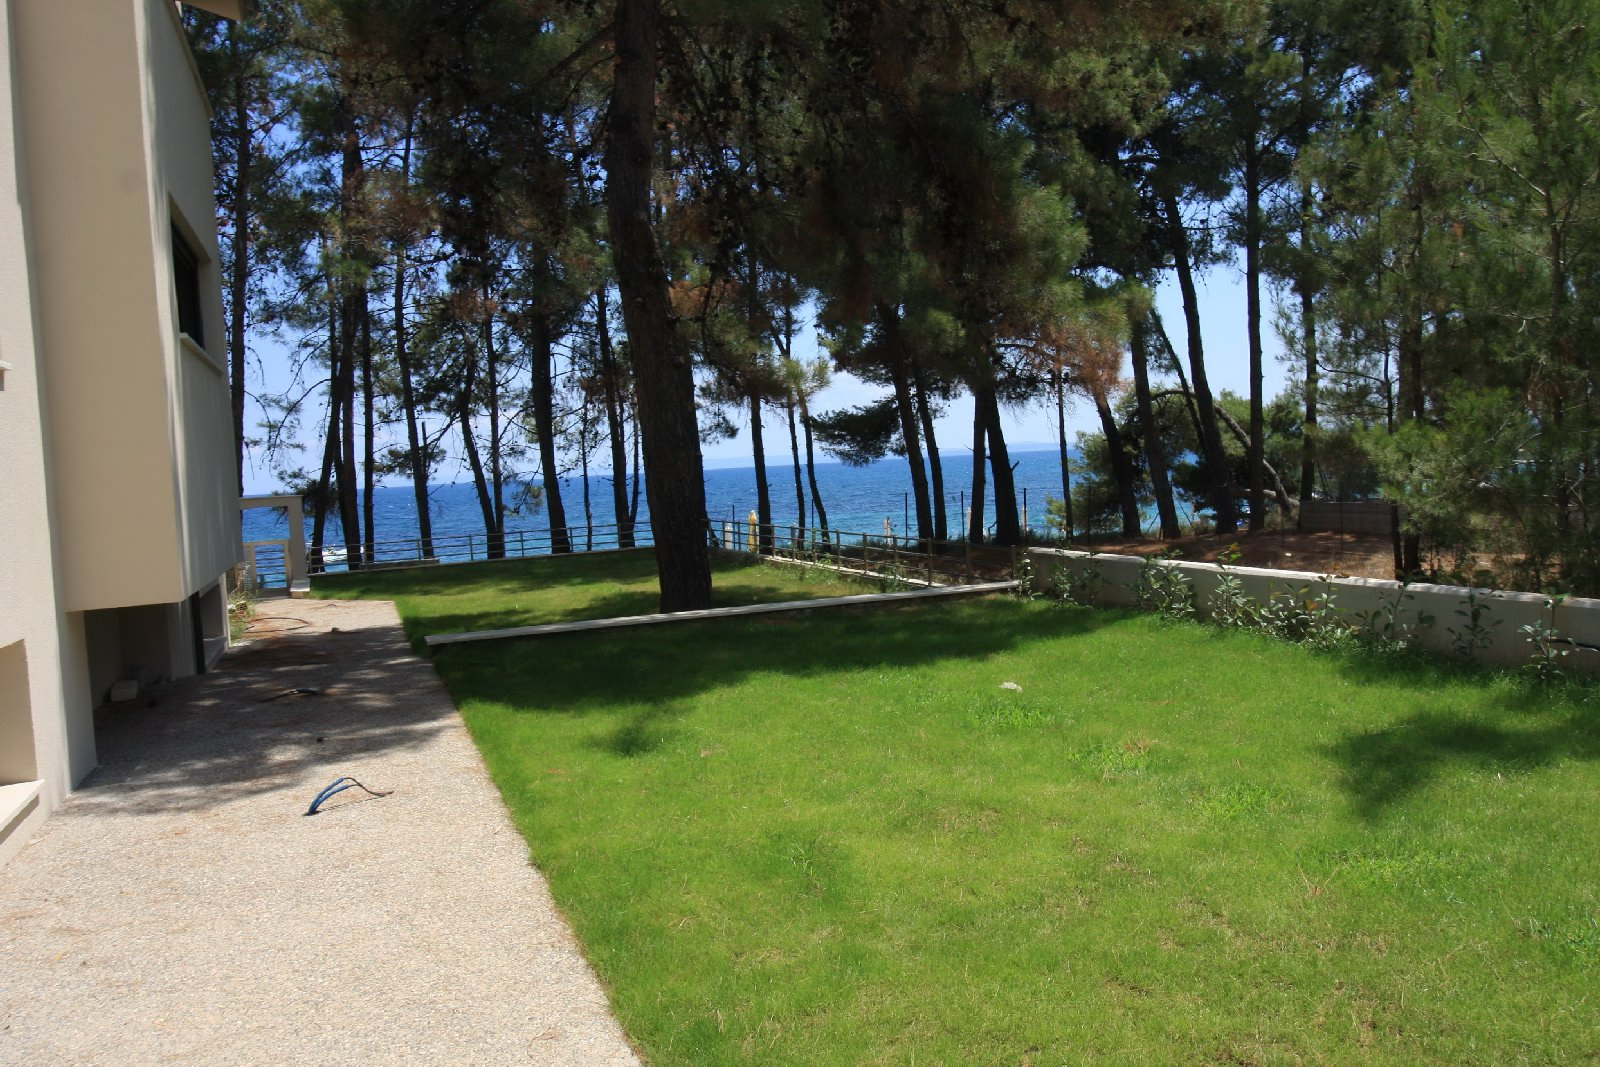 Todoros, Halkidiki-Sithonia, Greece - large new villa on the 1 line among the pines + a residence permit for 5 years for the whole family